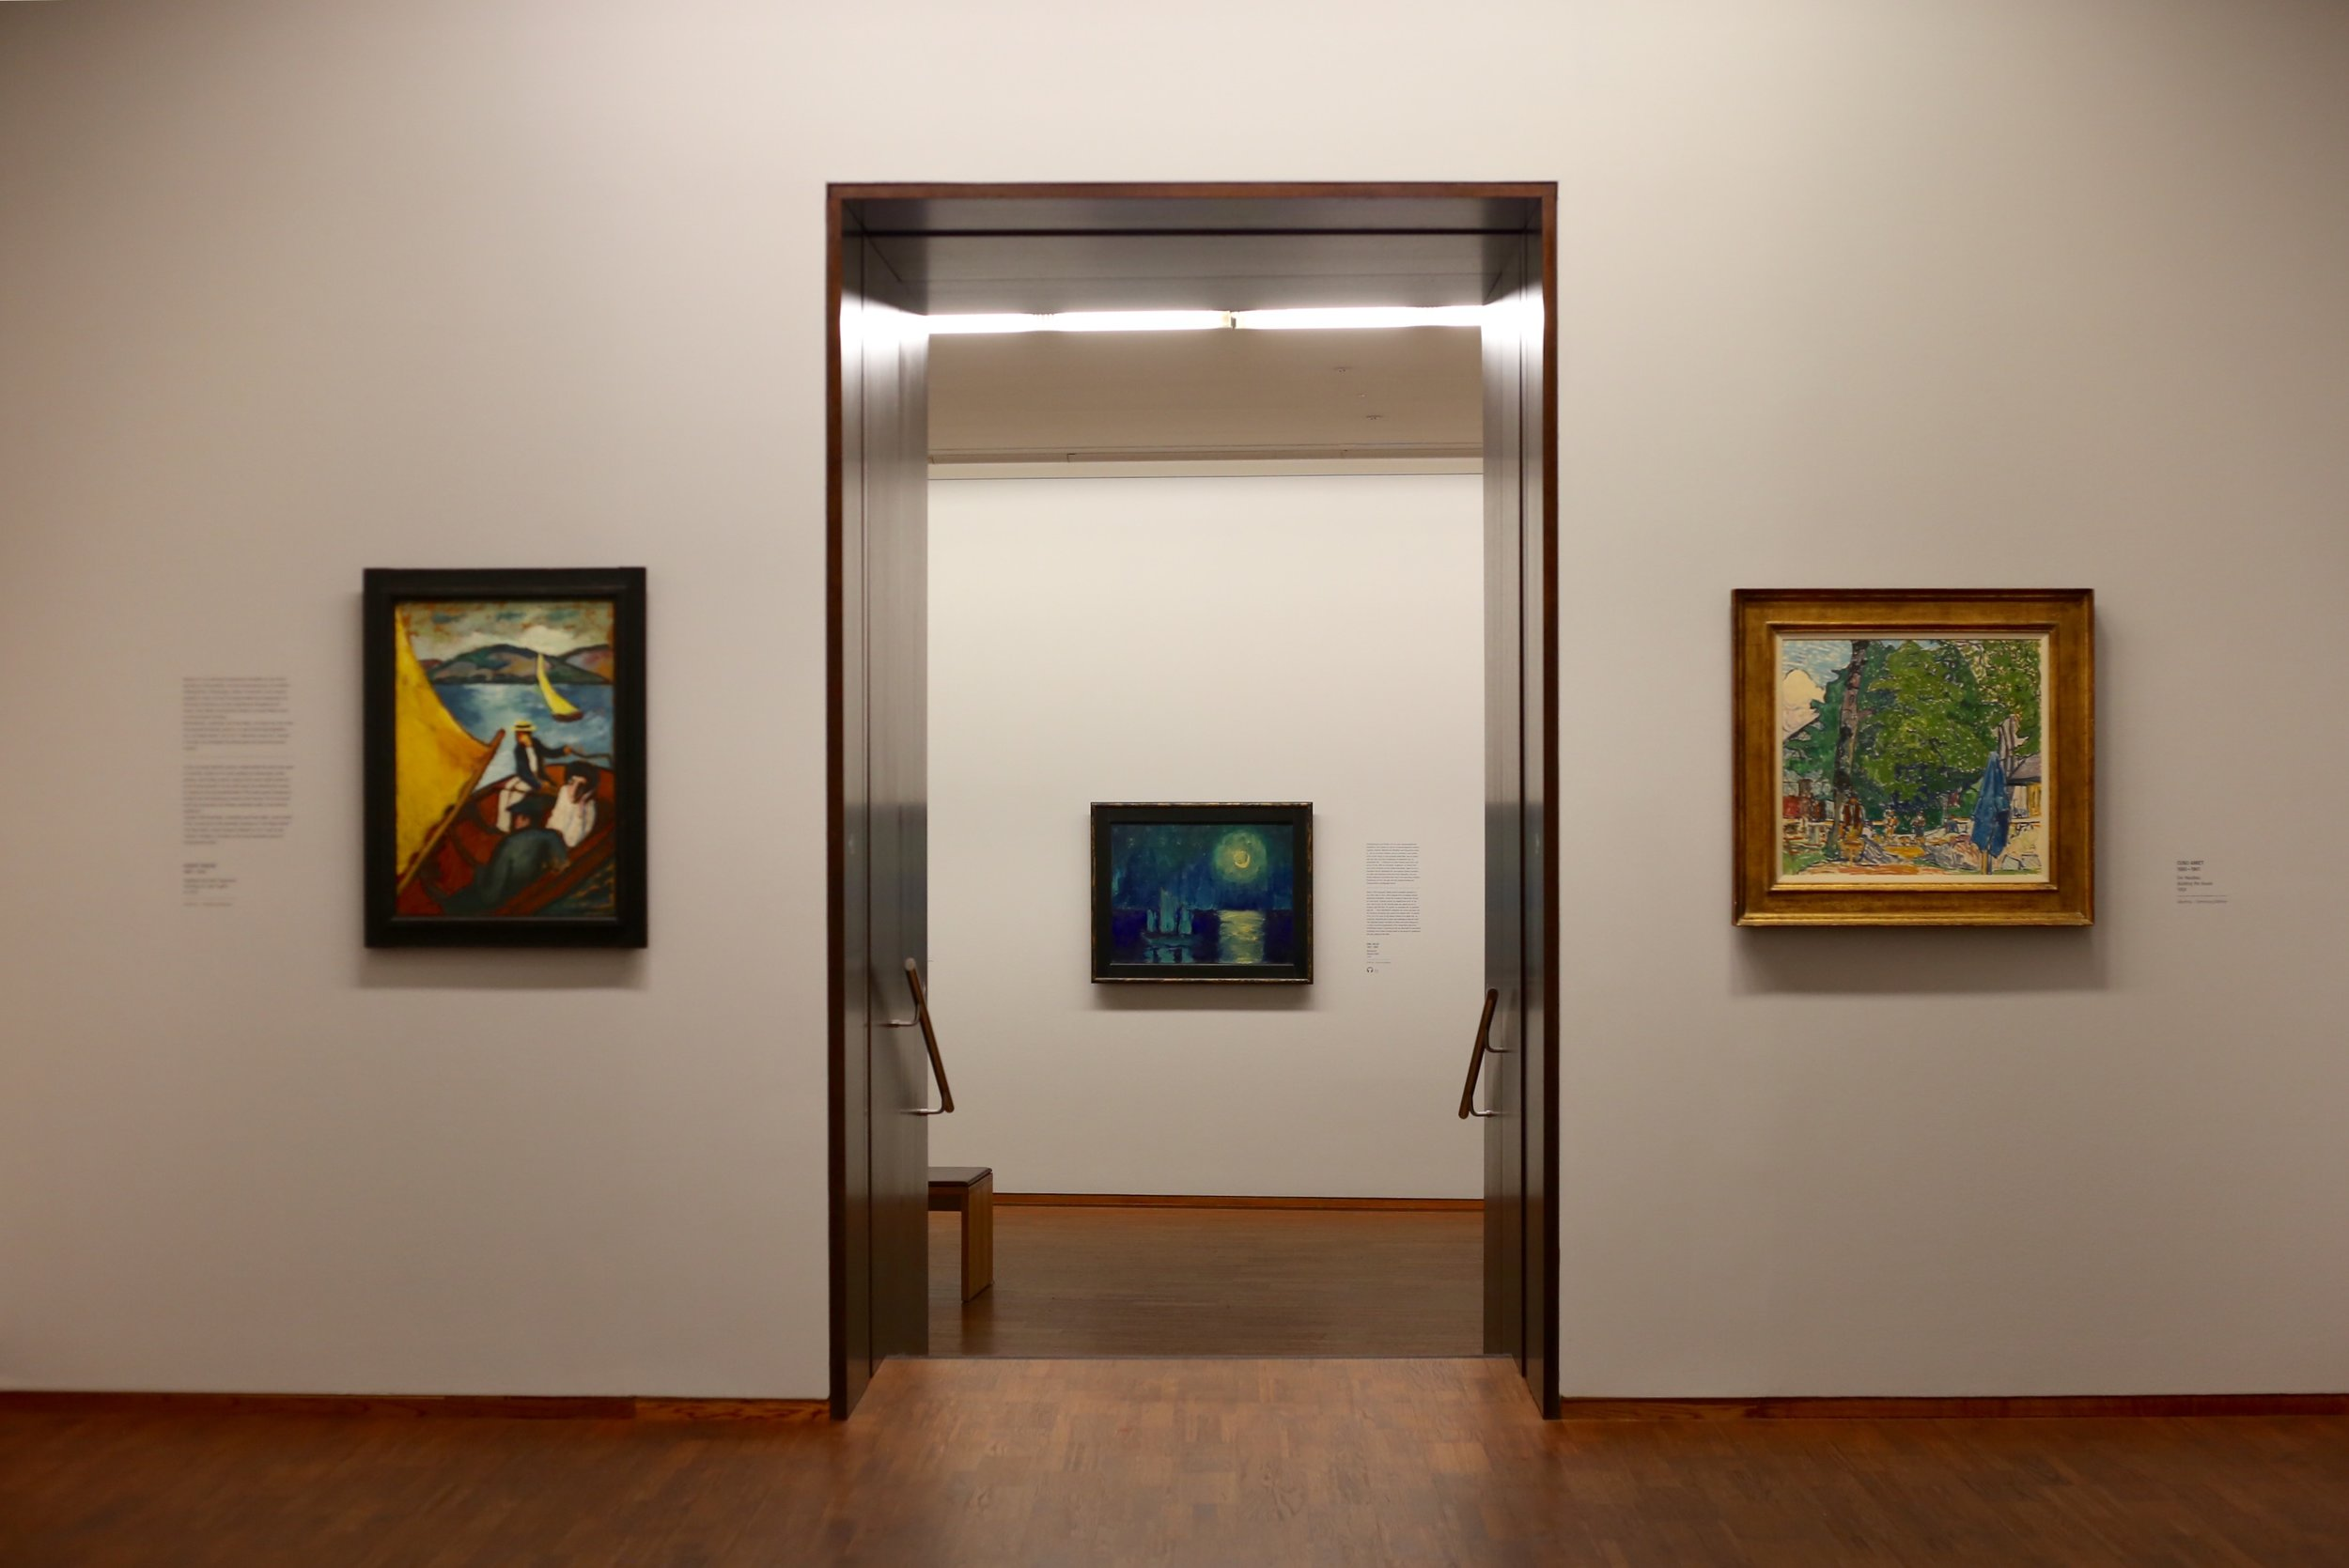 Art museum with paintings hanging on the walls.